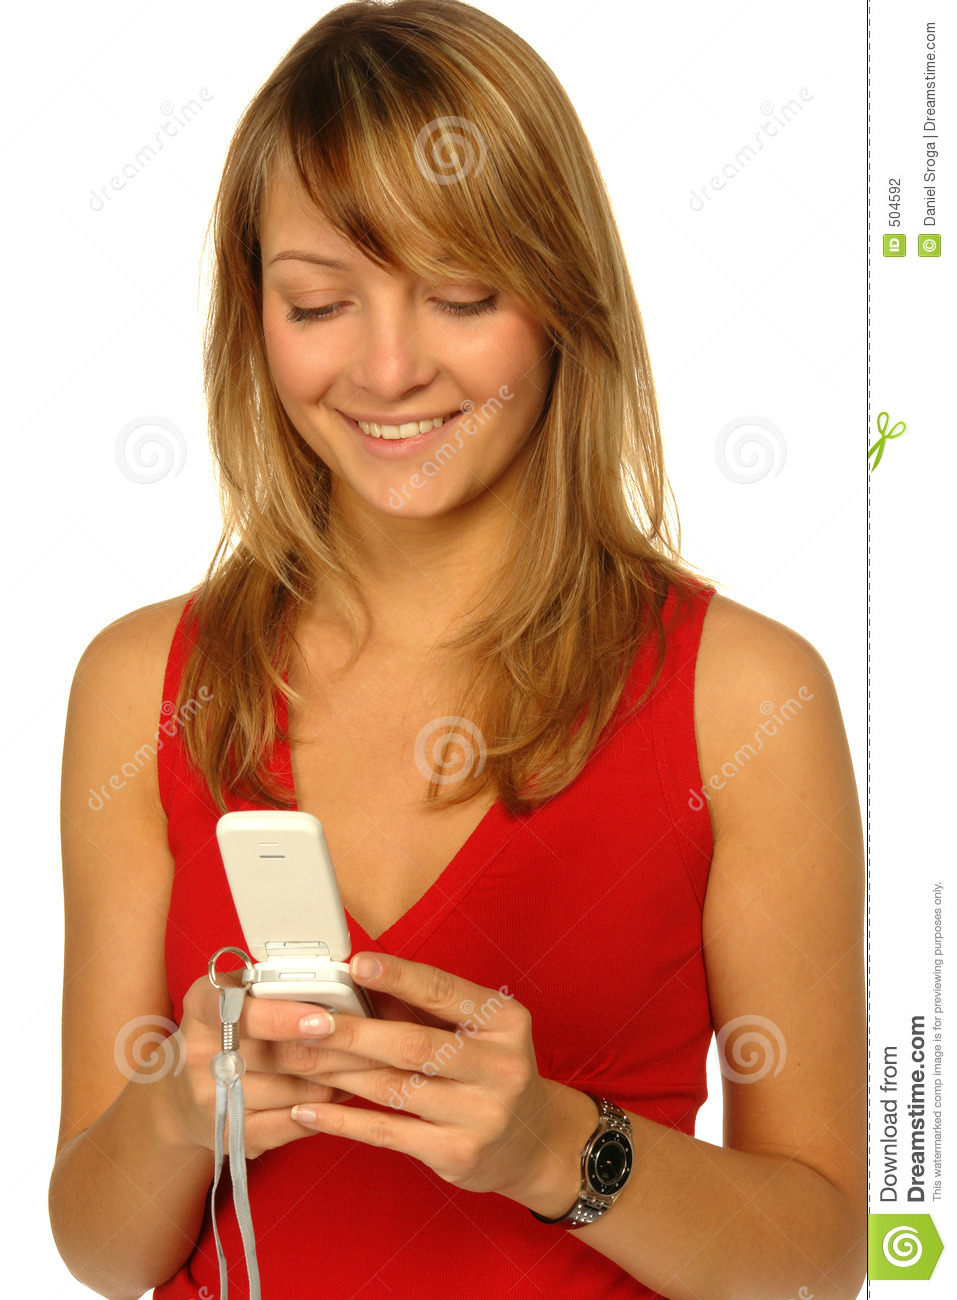 Blonde Girl With Cell Phone Stock Image - Image of eyes